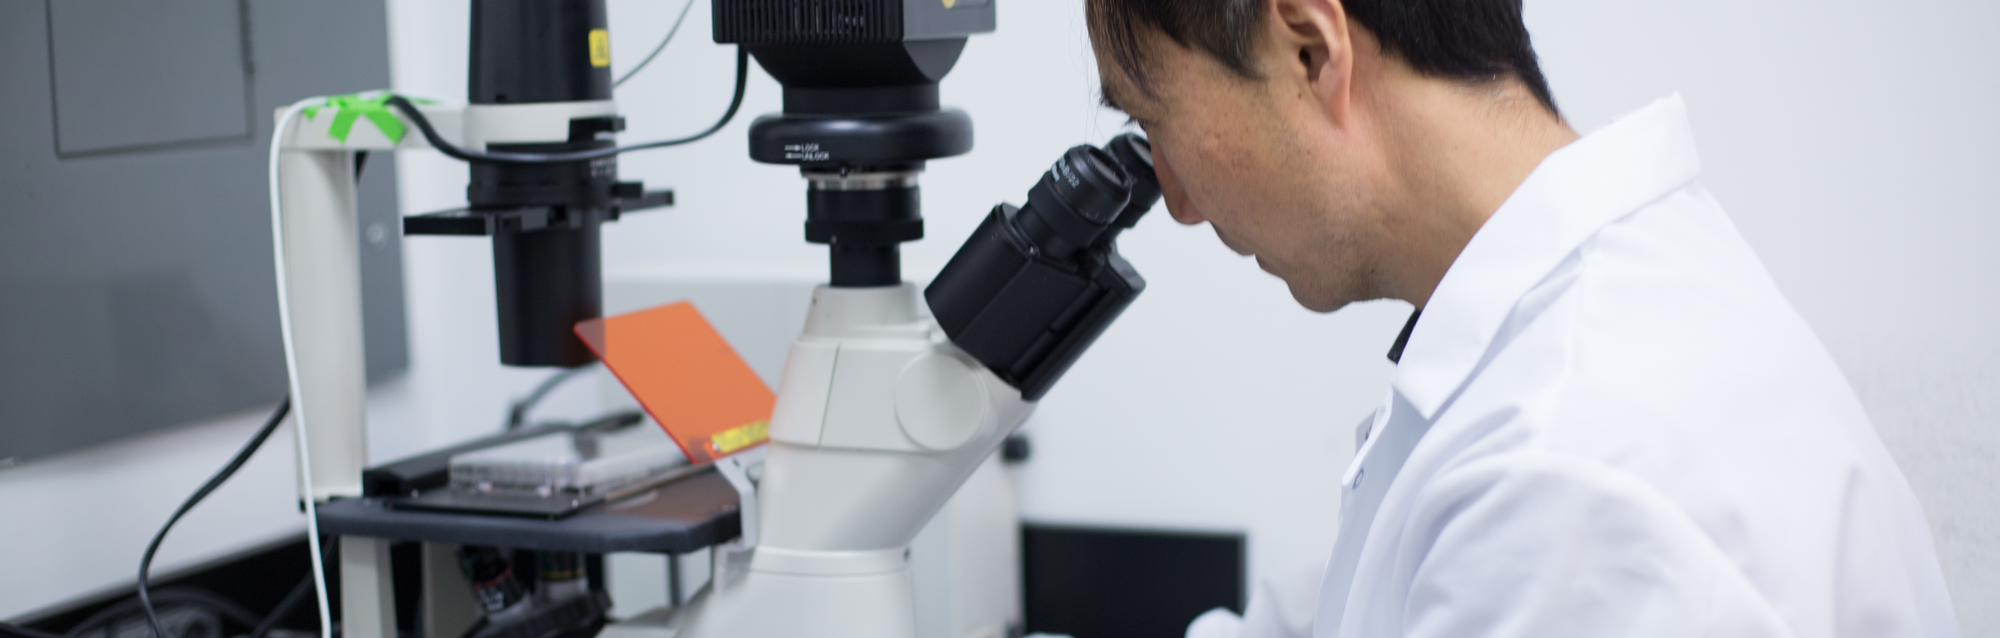 WCM researcher looking through microscope